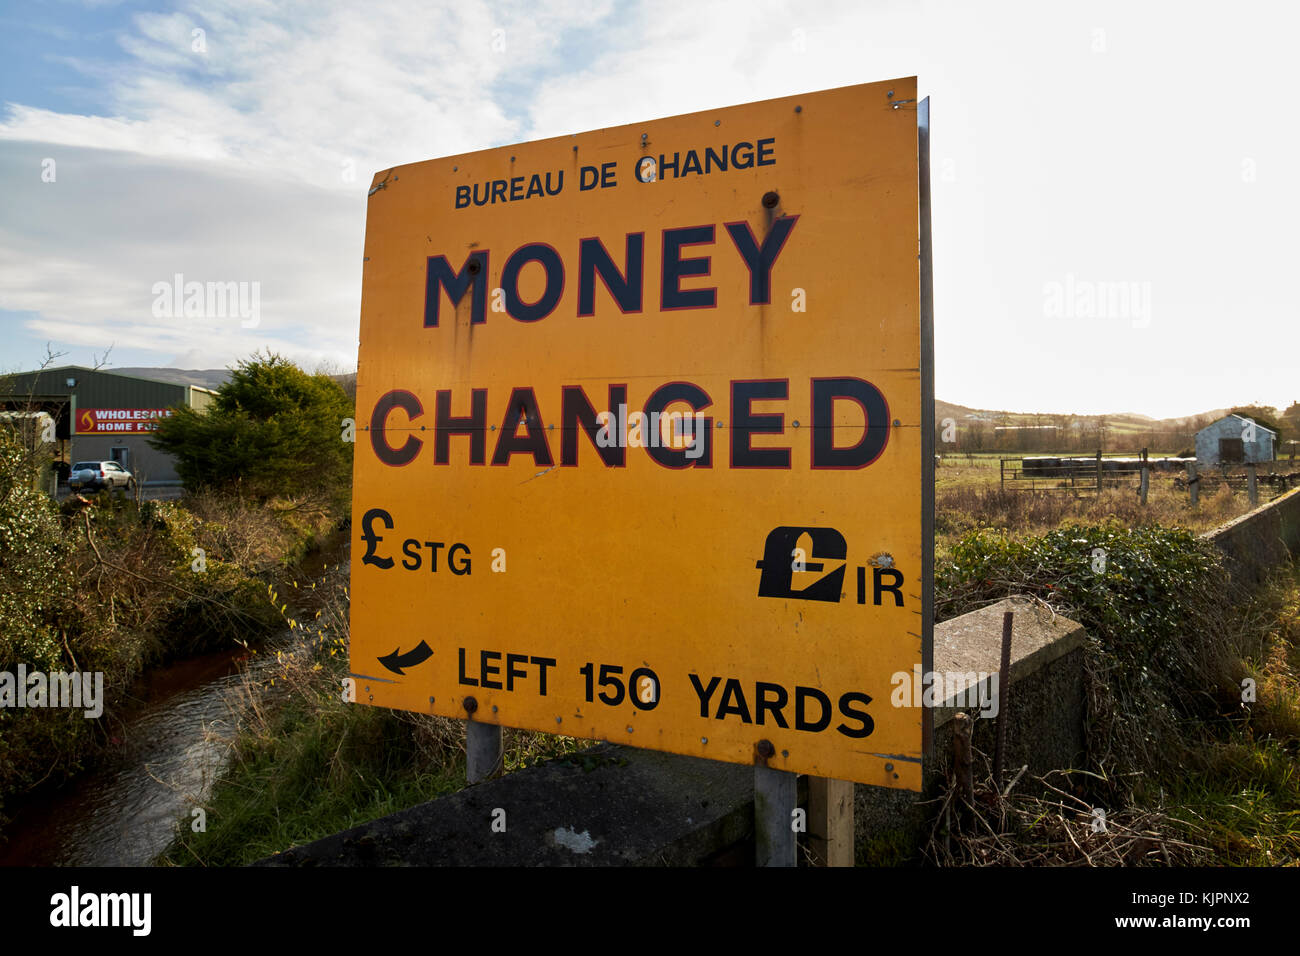 Bureau De Change Old Street change money stock photos & change money stock images - alamy